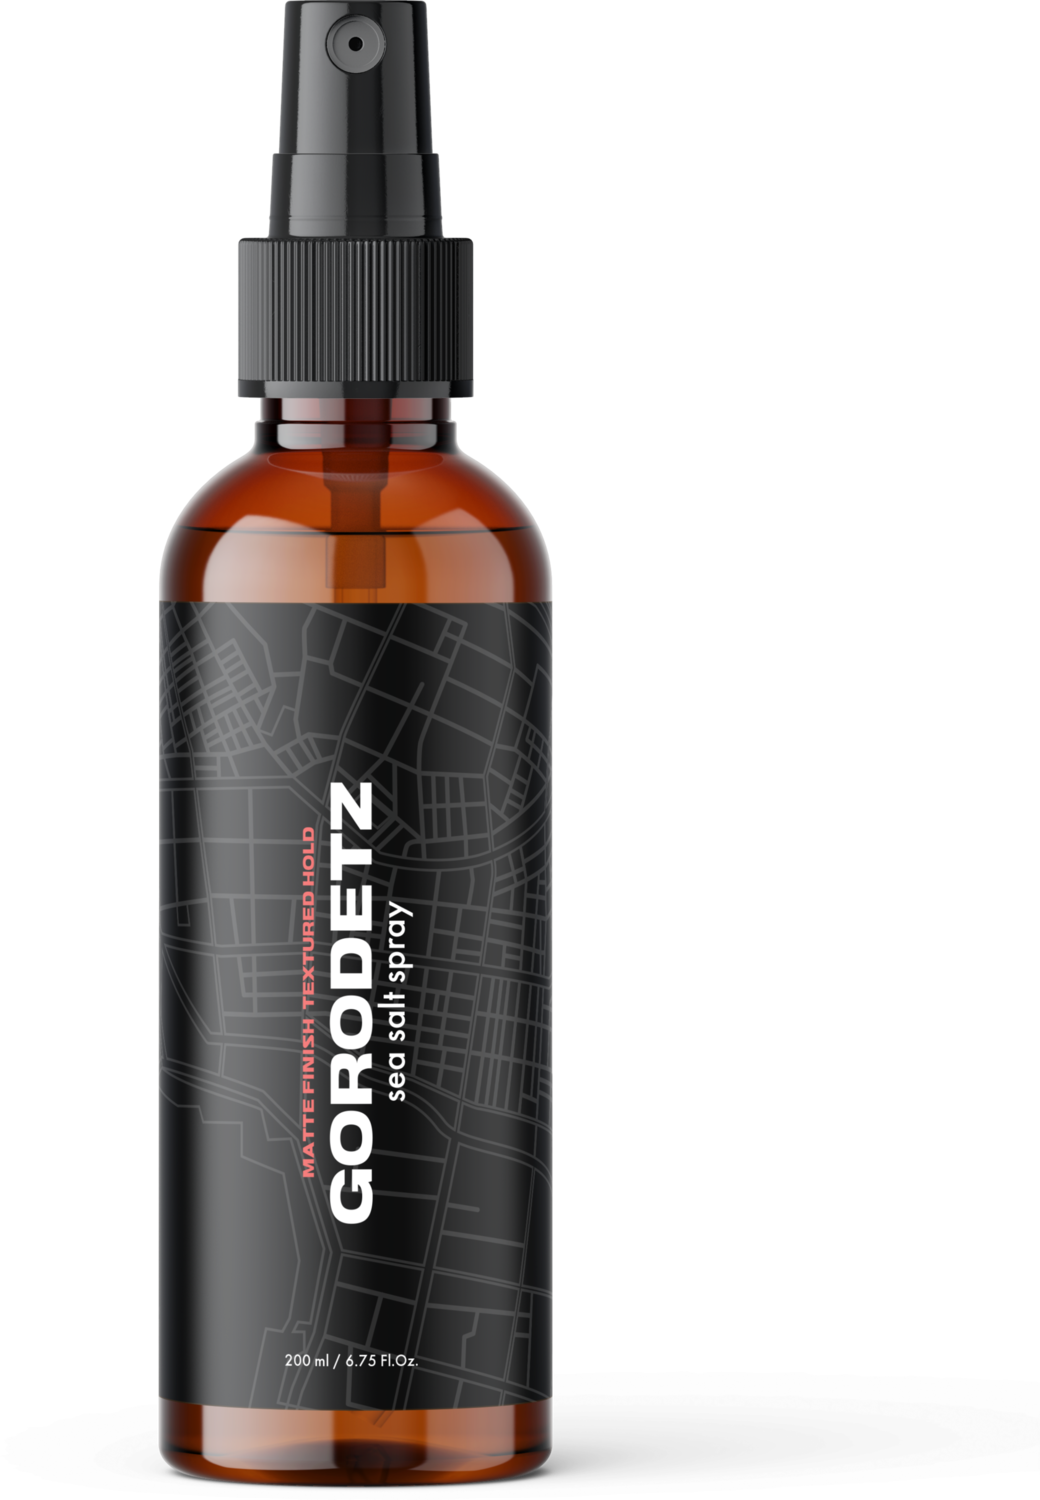 GORODETZ Sea Salt Spray / Спрей Морская Соль 200 мл